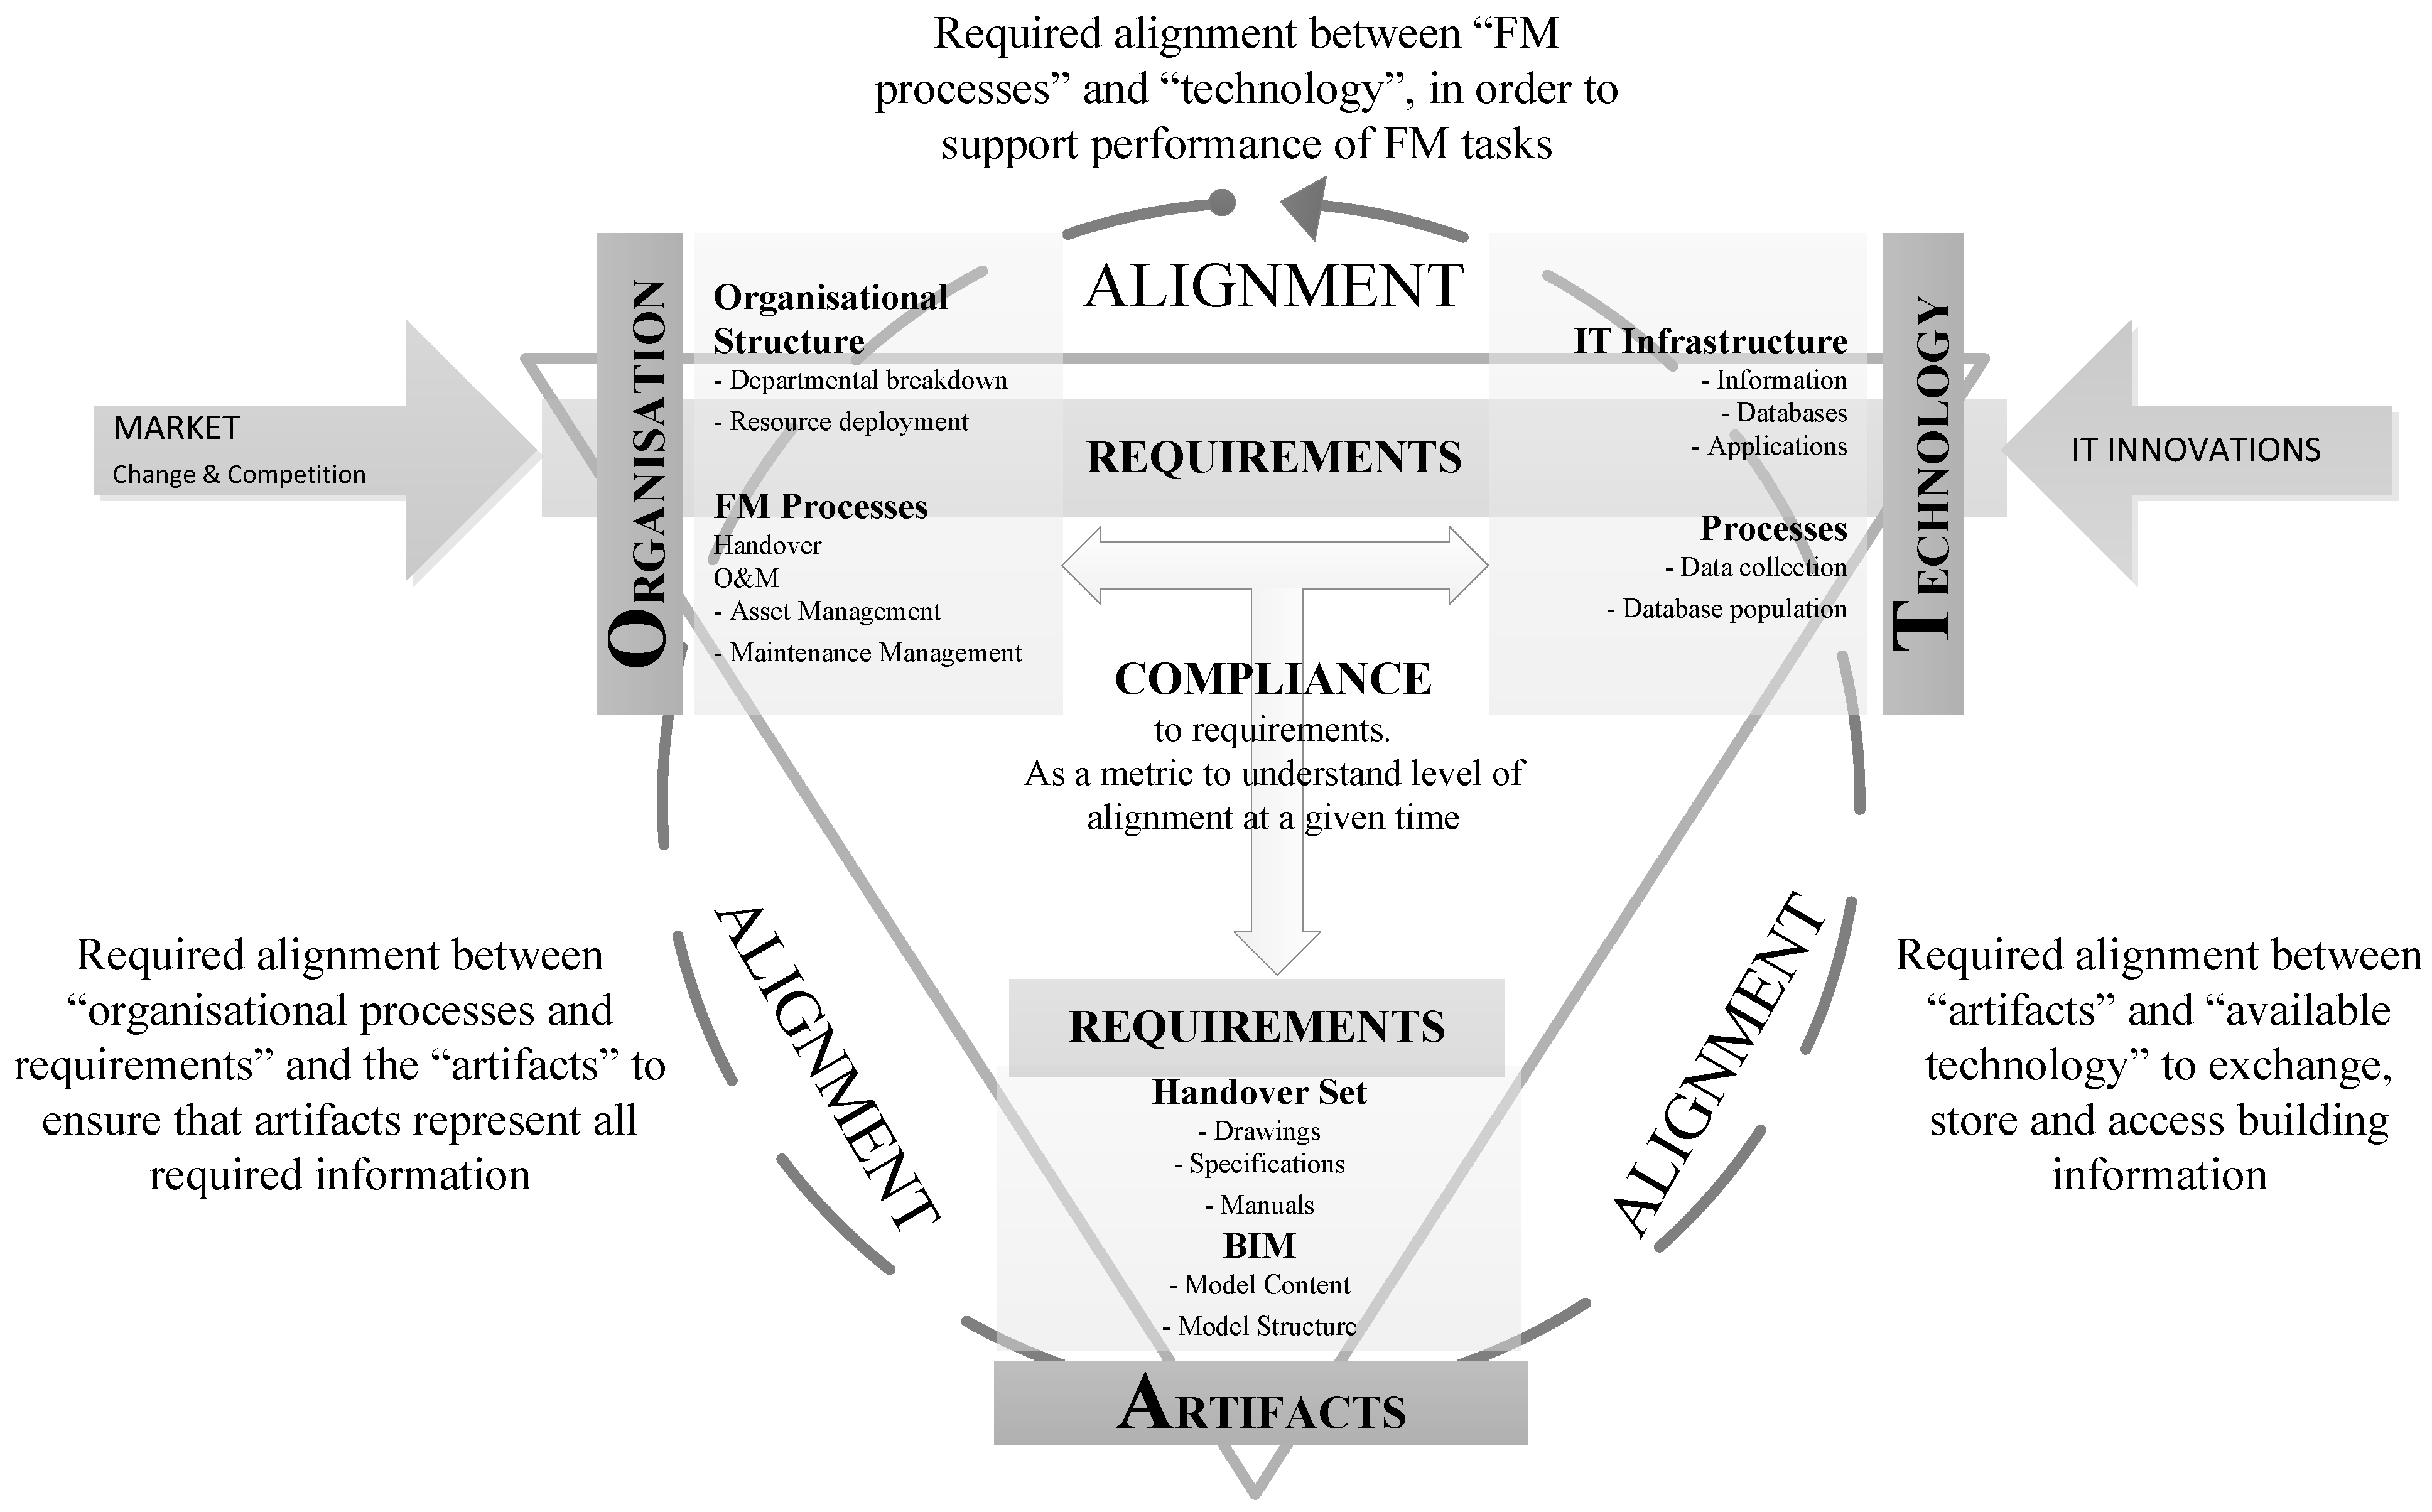 an analysis of information technology it and organizational structure alignment